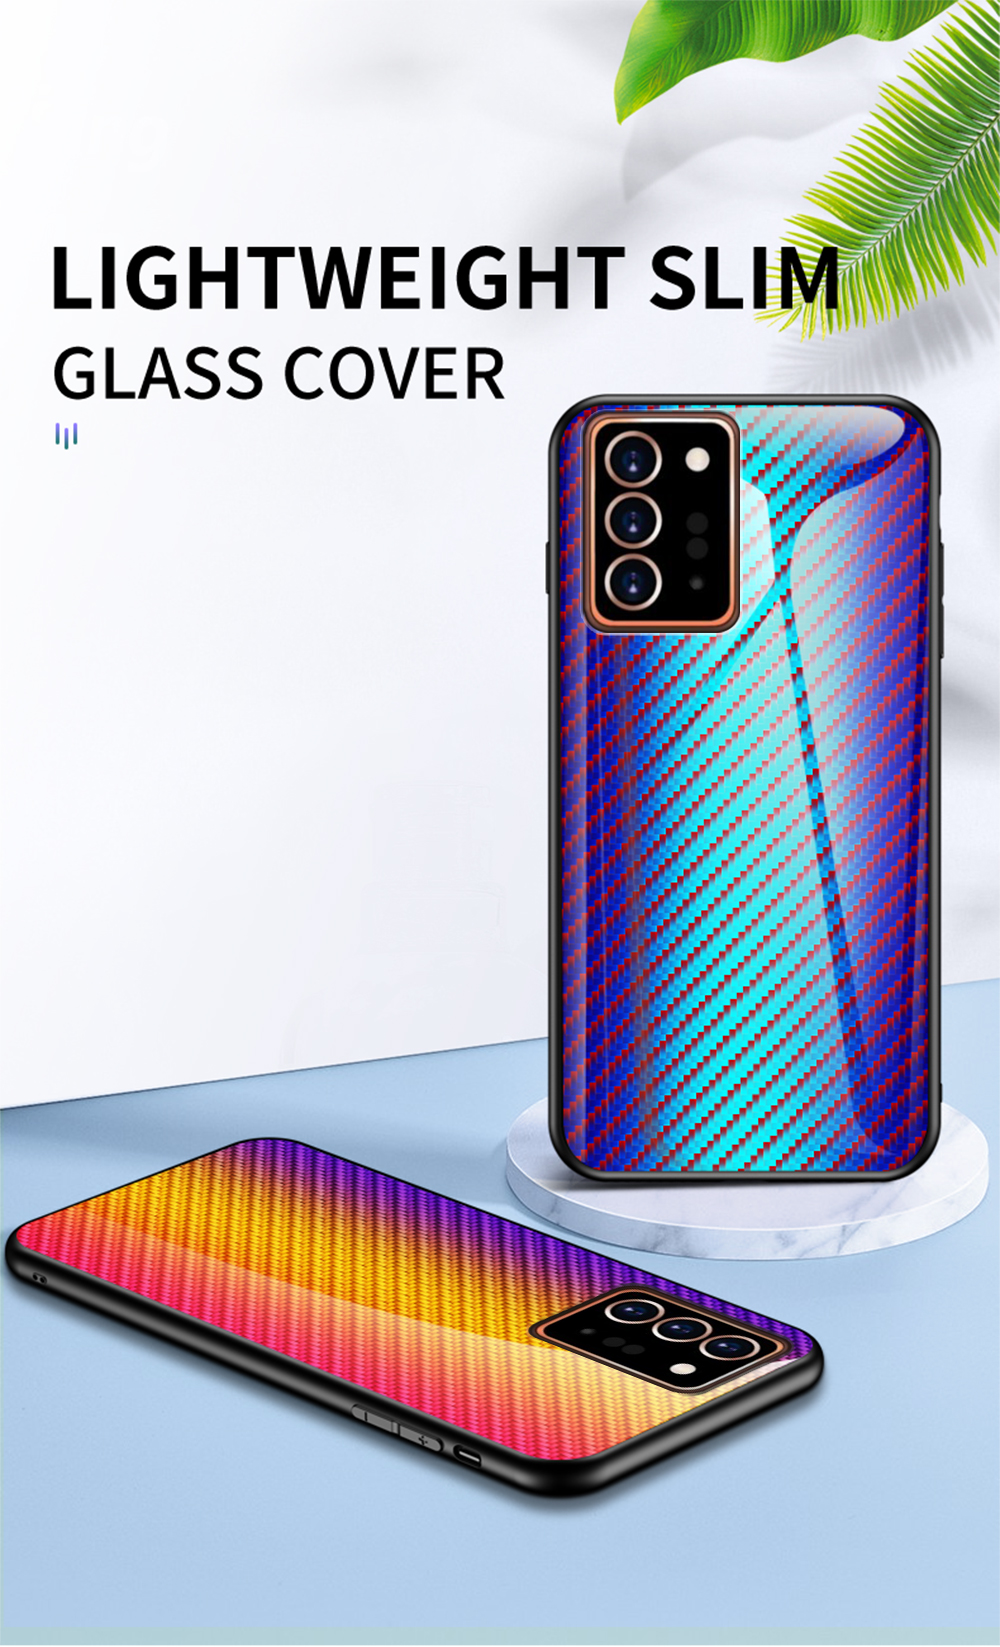 XUANYAO Case Cover For Samsung Galaxy Note 20 Plus Case Glass Hard Cover For Samsung Galaxy Note 20 Ultra Case Slim Carbon Fiber (3)